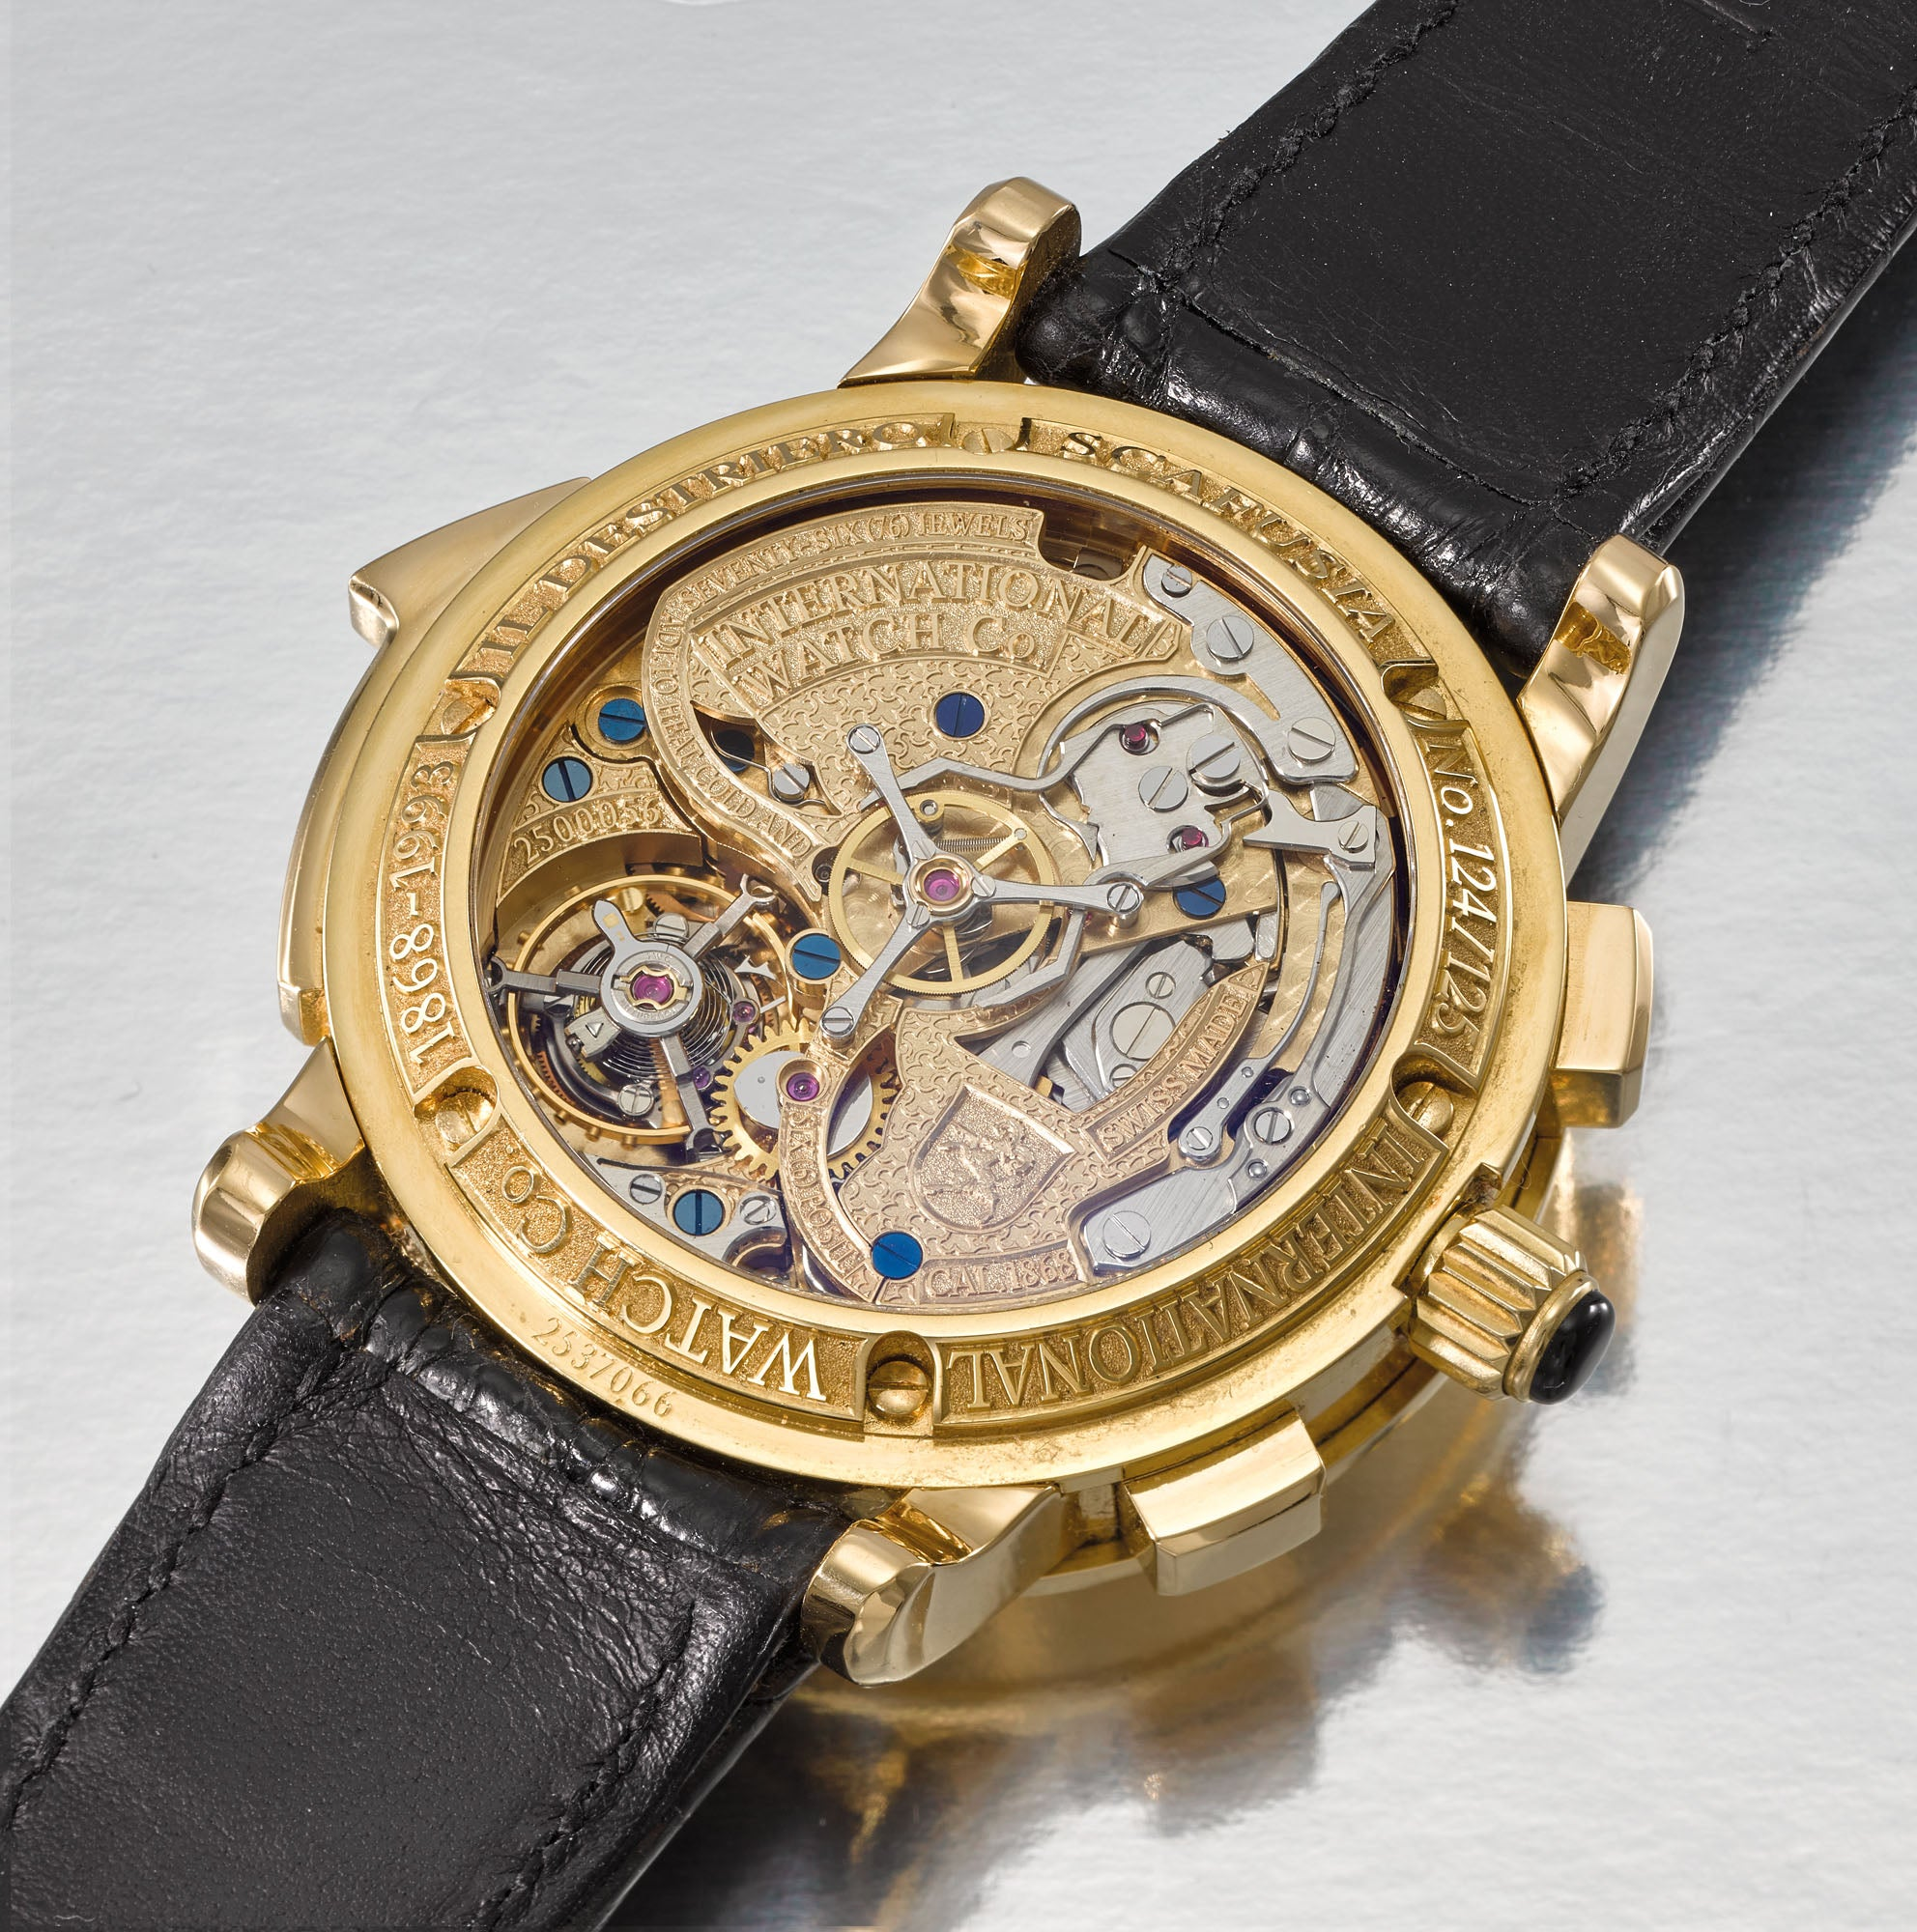 The watch movement of the IWC Il Destriero Scafusia grand complication wristwatch for A Collected Man London